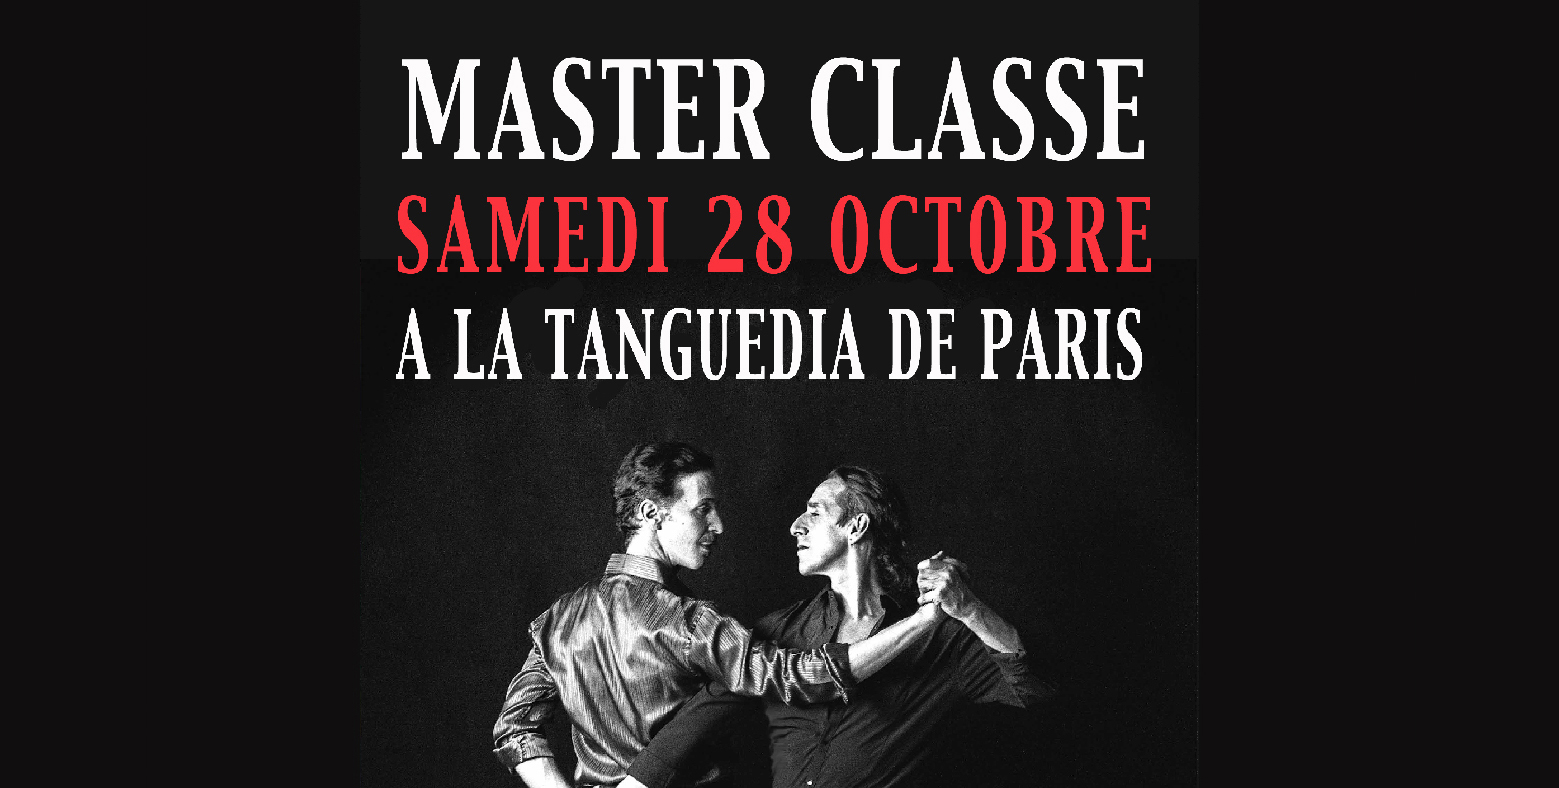 TANGO FLAYER2016/17  JY R - copie.pages